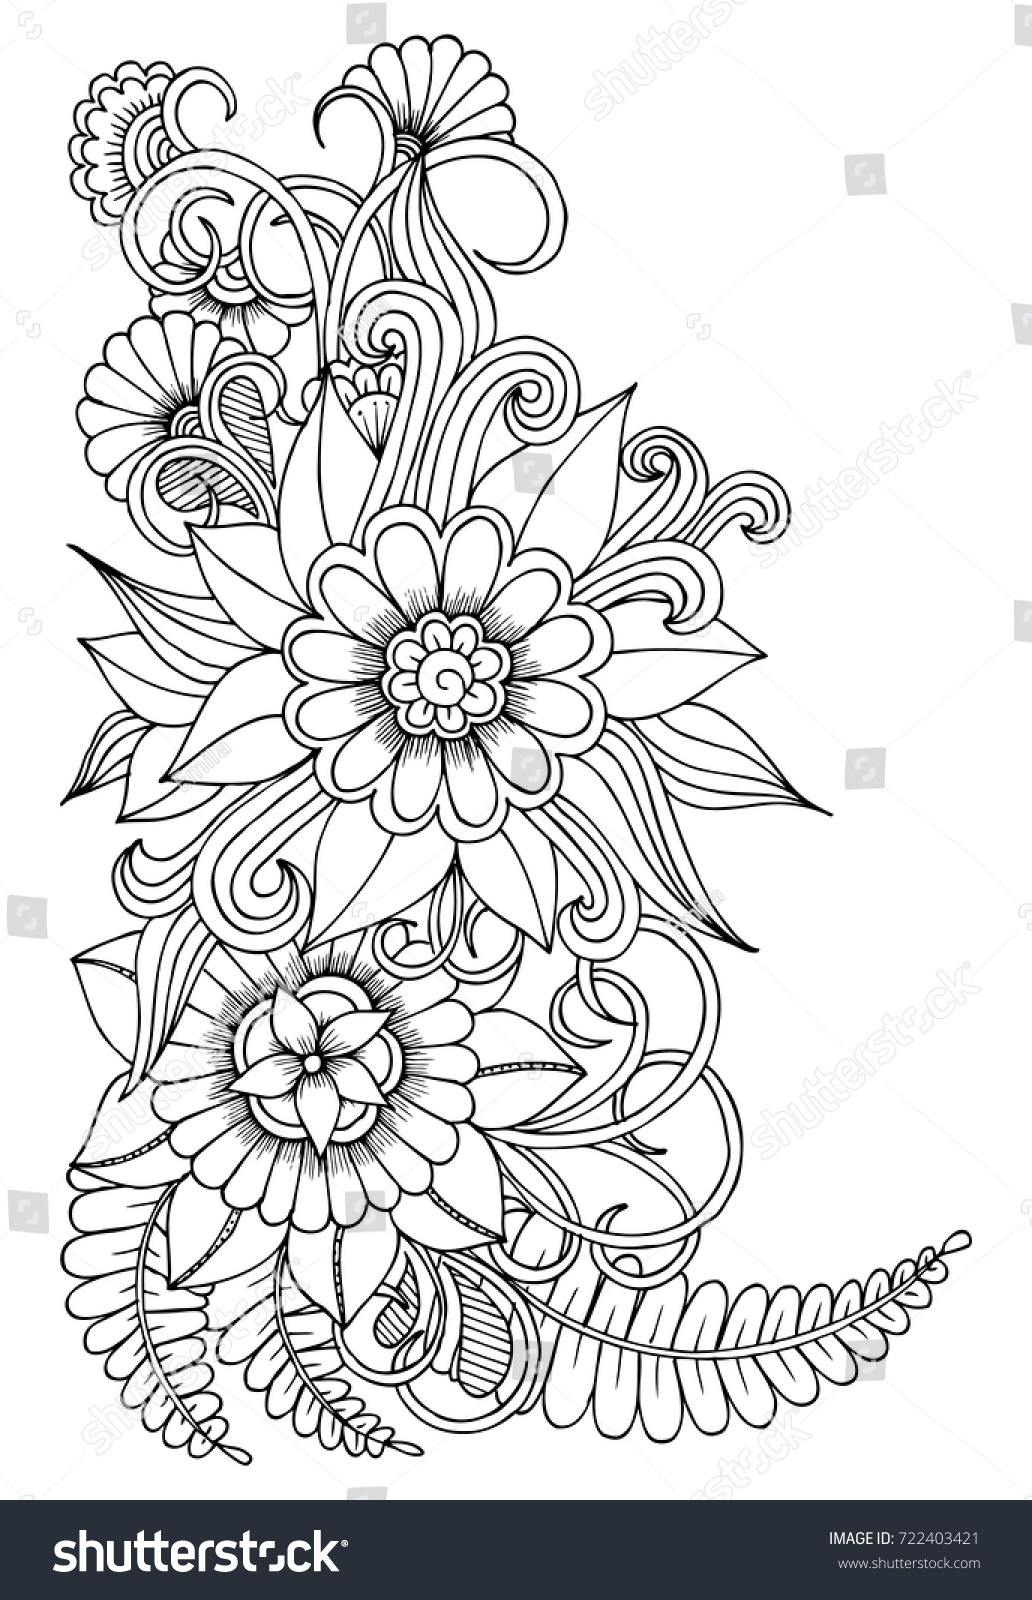 Black White Flower Pattern Adult Coloring Stock Vector 722403421 ...